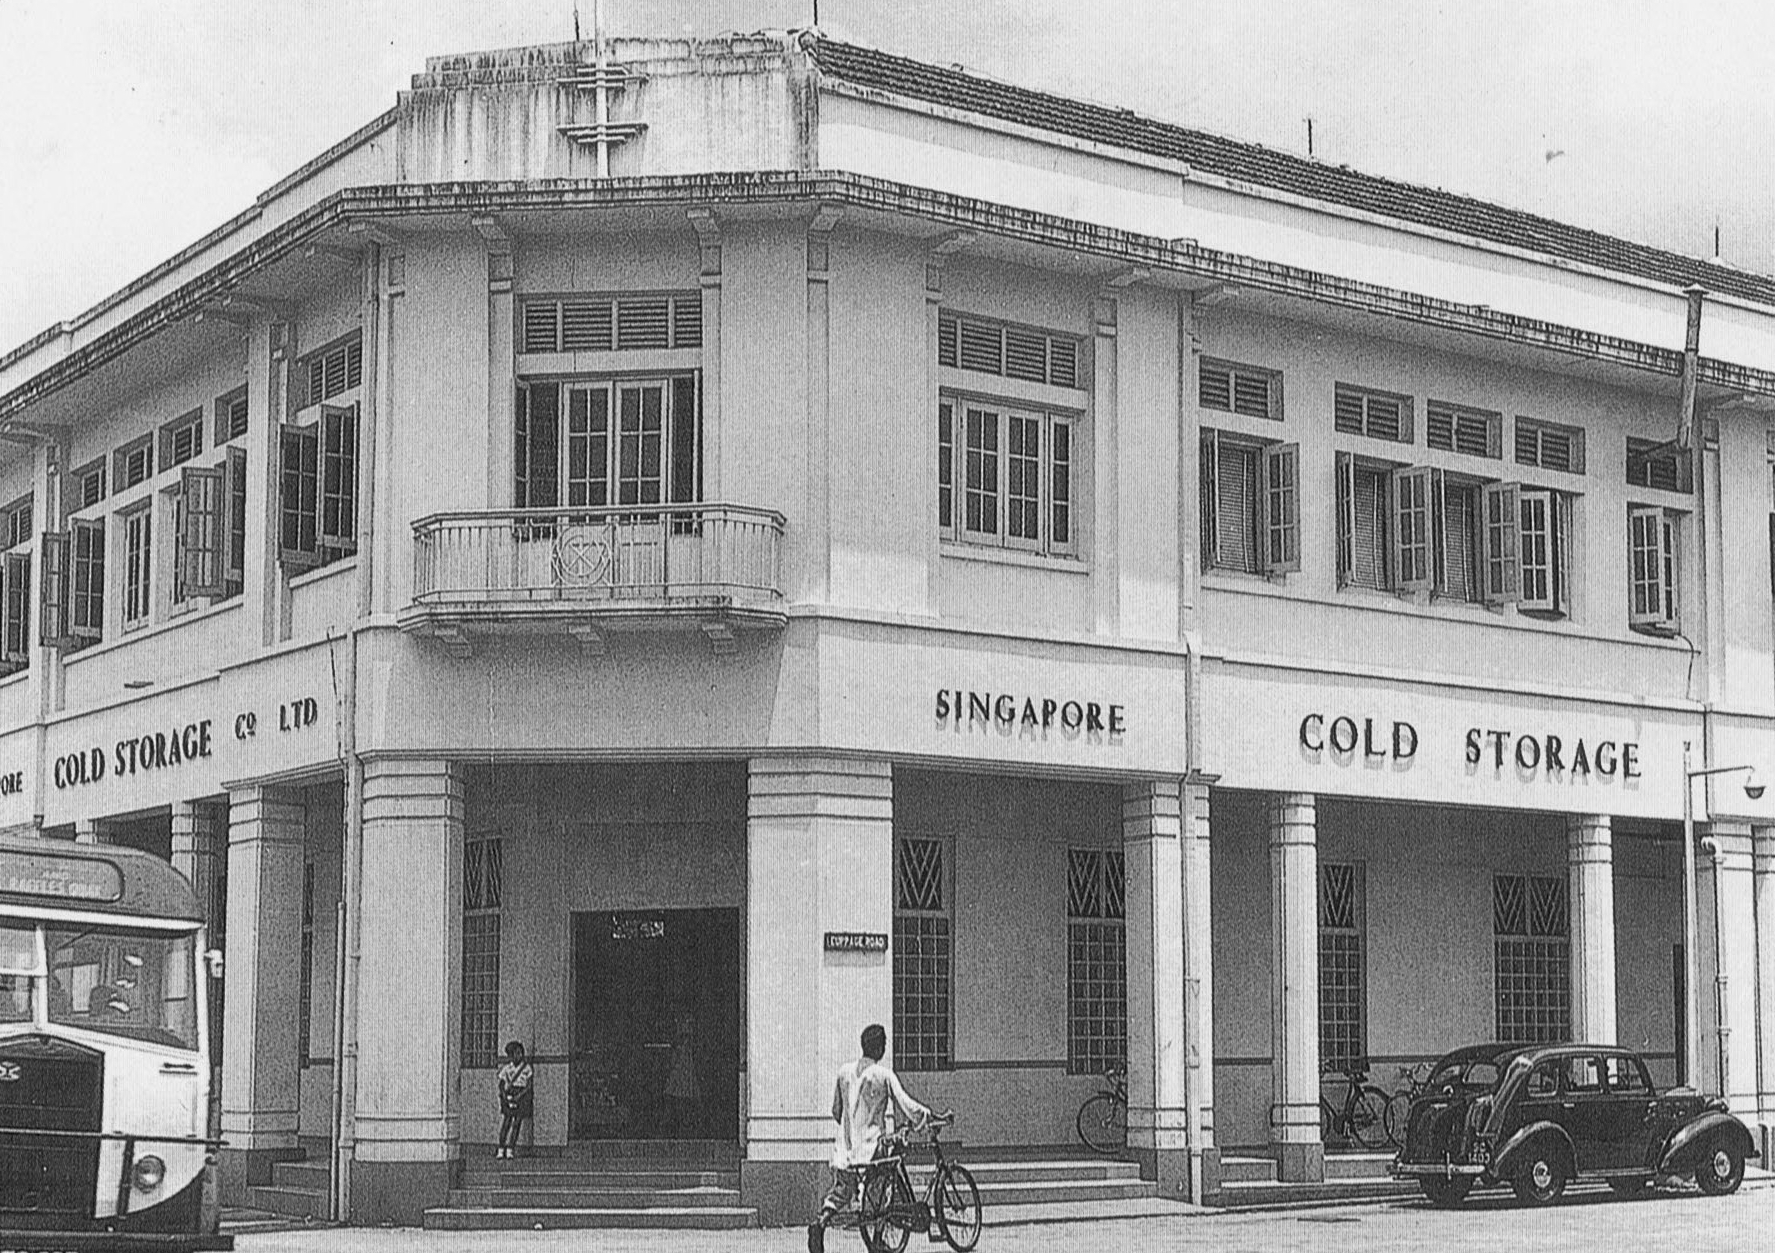 The old Cold Storage ... & Impressions of Orchard Road in the 1970s | The Long and Winding Road